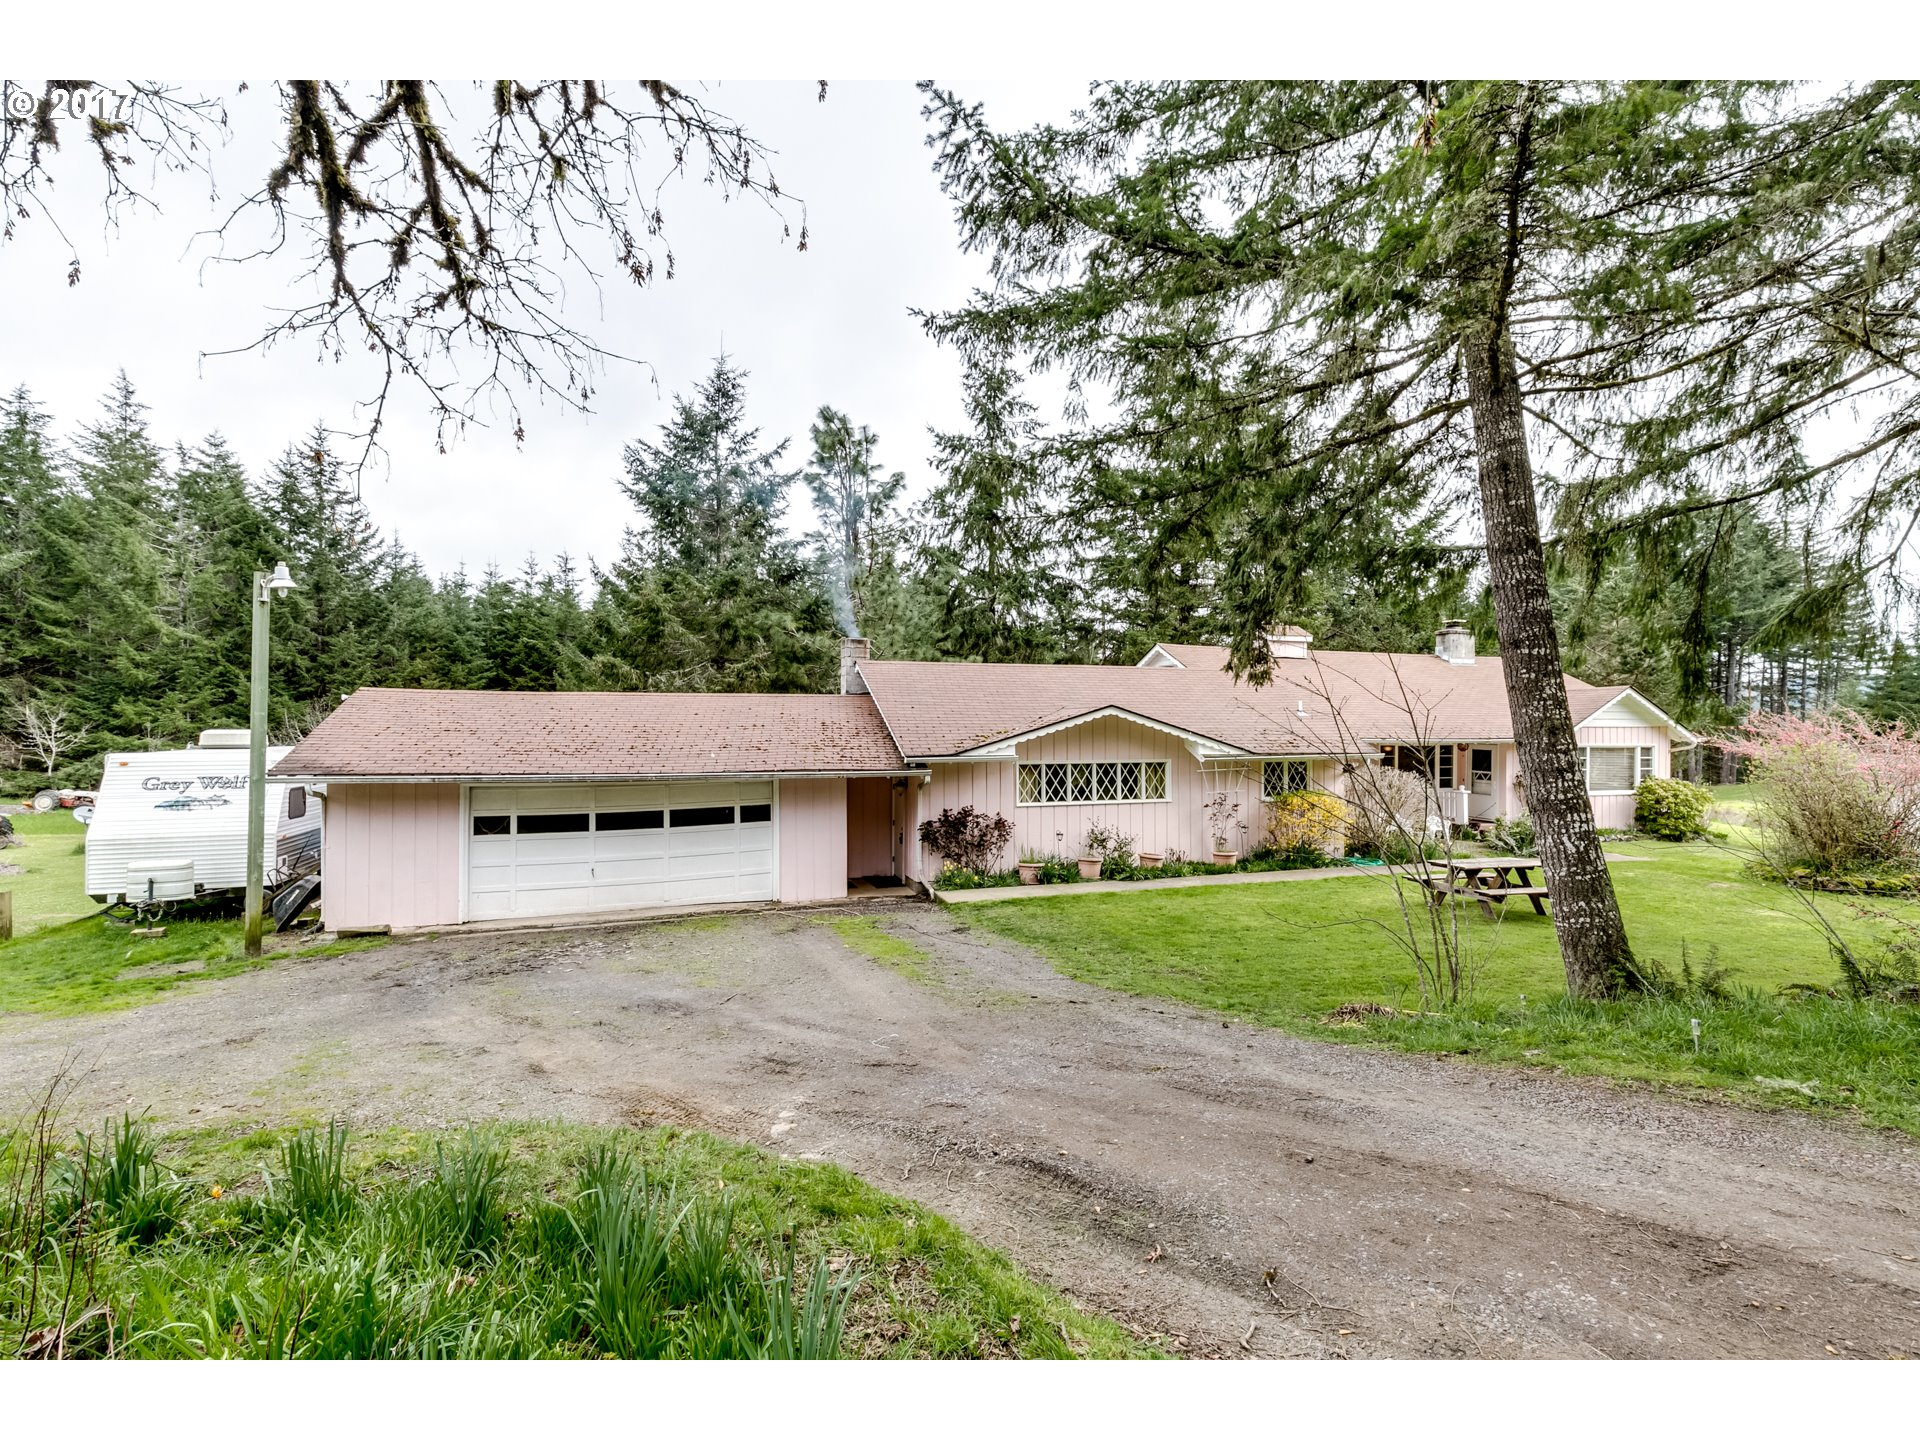 5225 Territorial HWY, Cottage Grove, OR 97424